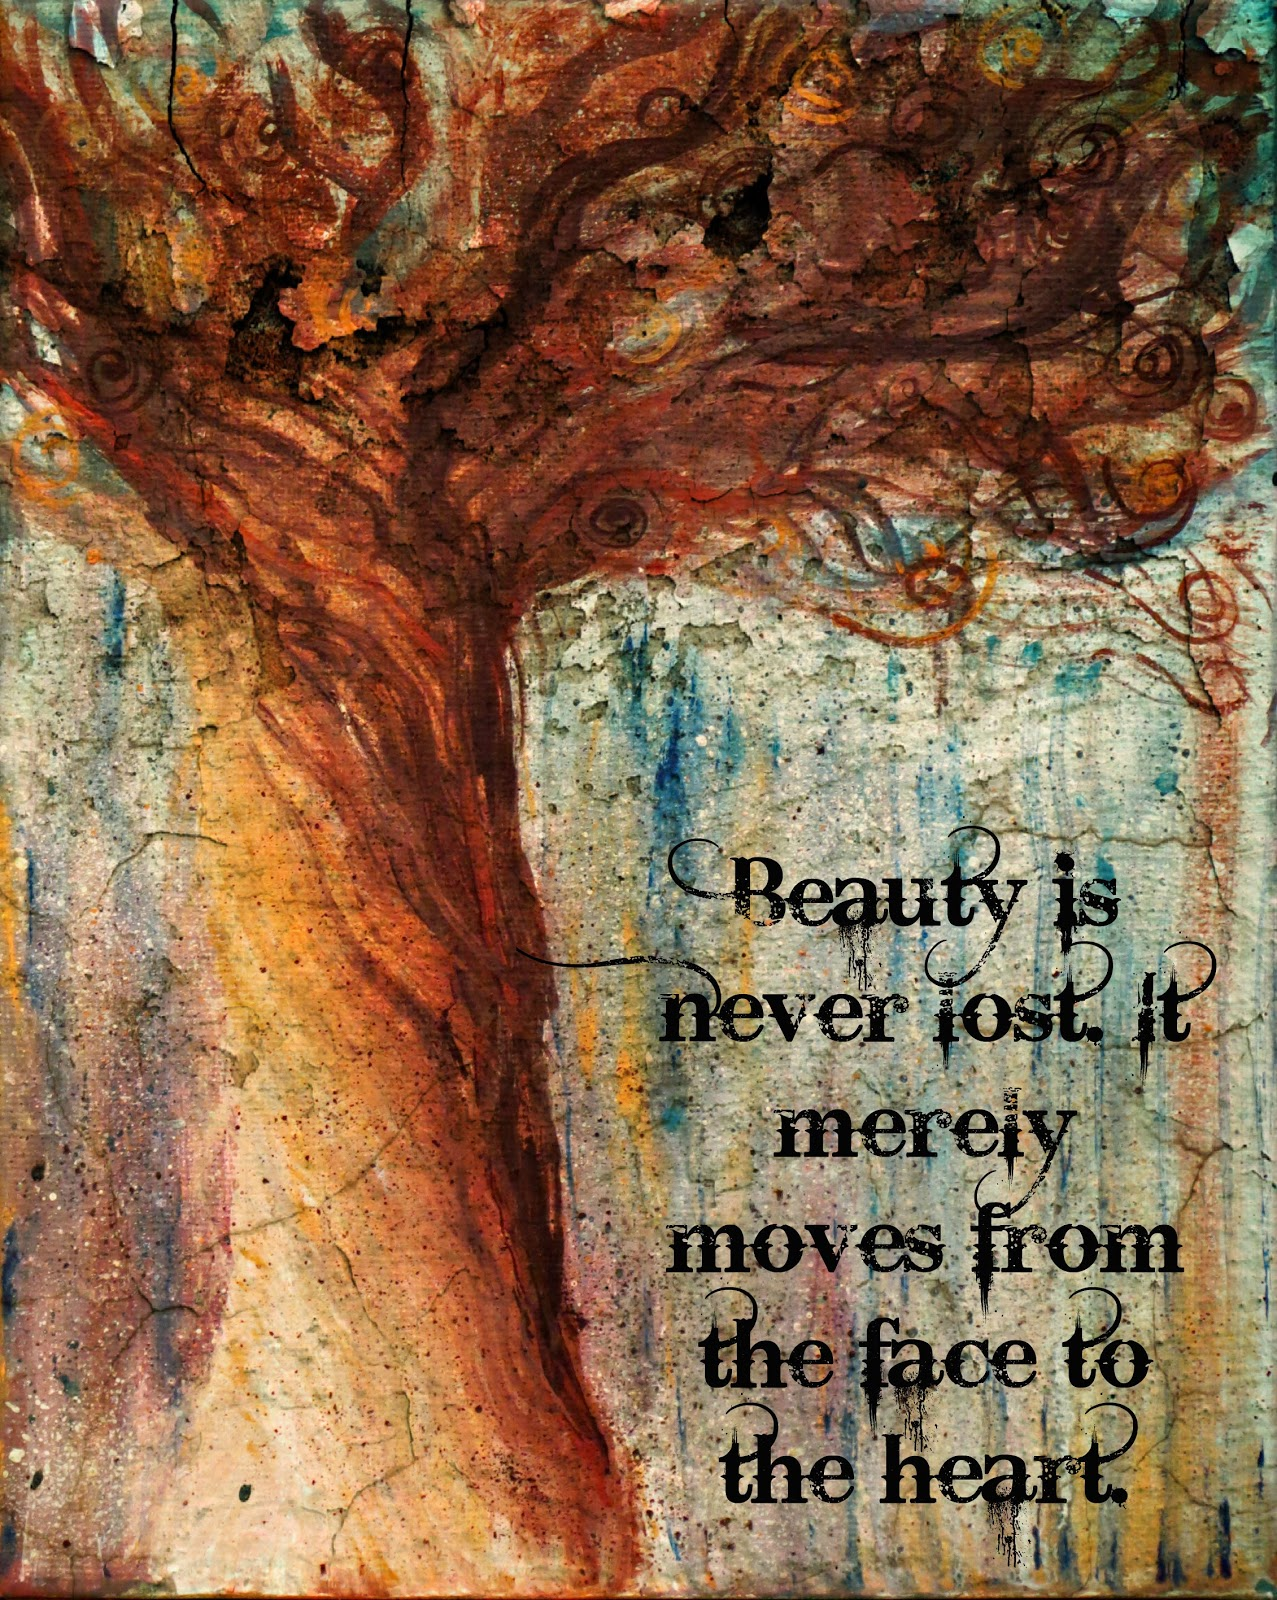 Beauty is never lost. It merely moves from the face to the heart